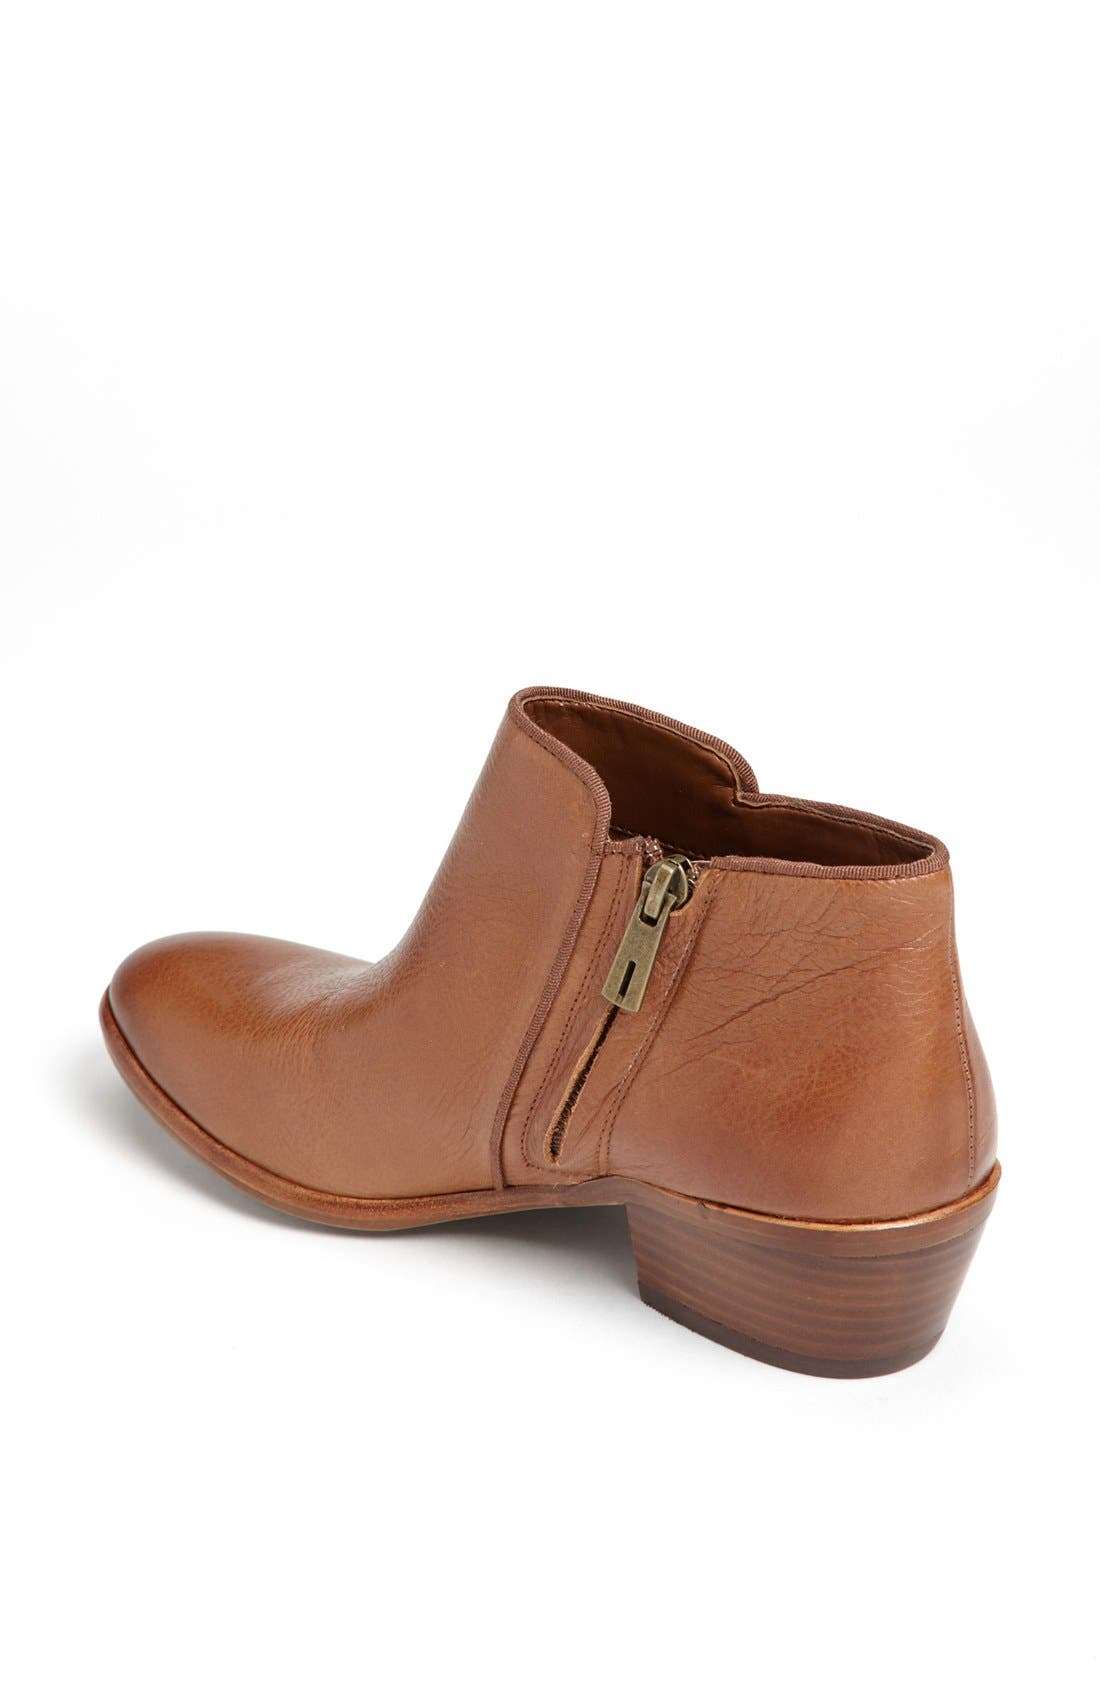 Alternate Image 2  - Sam Edelman 'Petty' Chelsea Boot (Women)